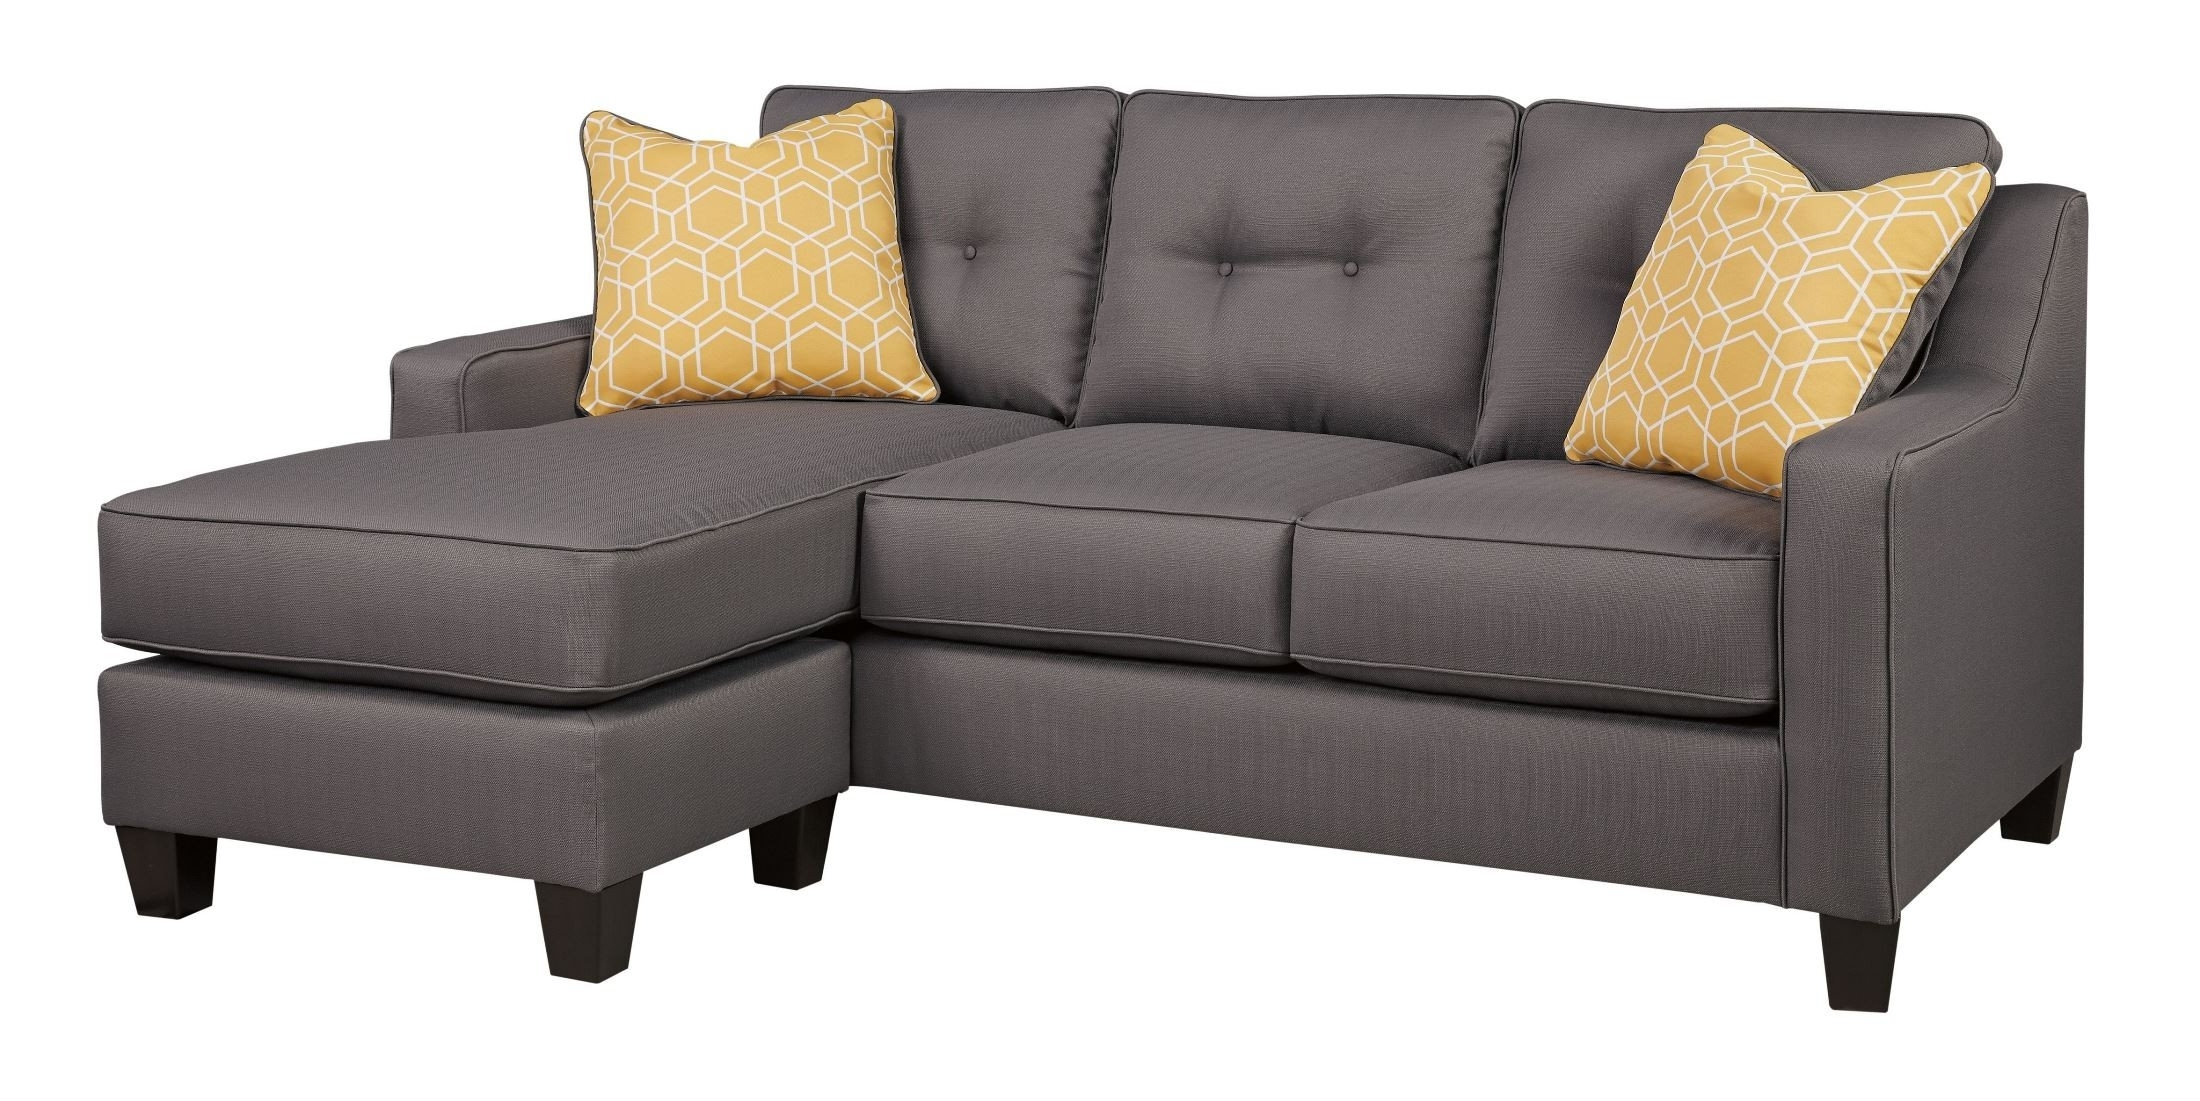 Gray Sofa With Chaise Regarding Favorite Aldie Nuvella Gray Sofa Chaise From Ashley (View 6 of 15)